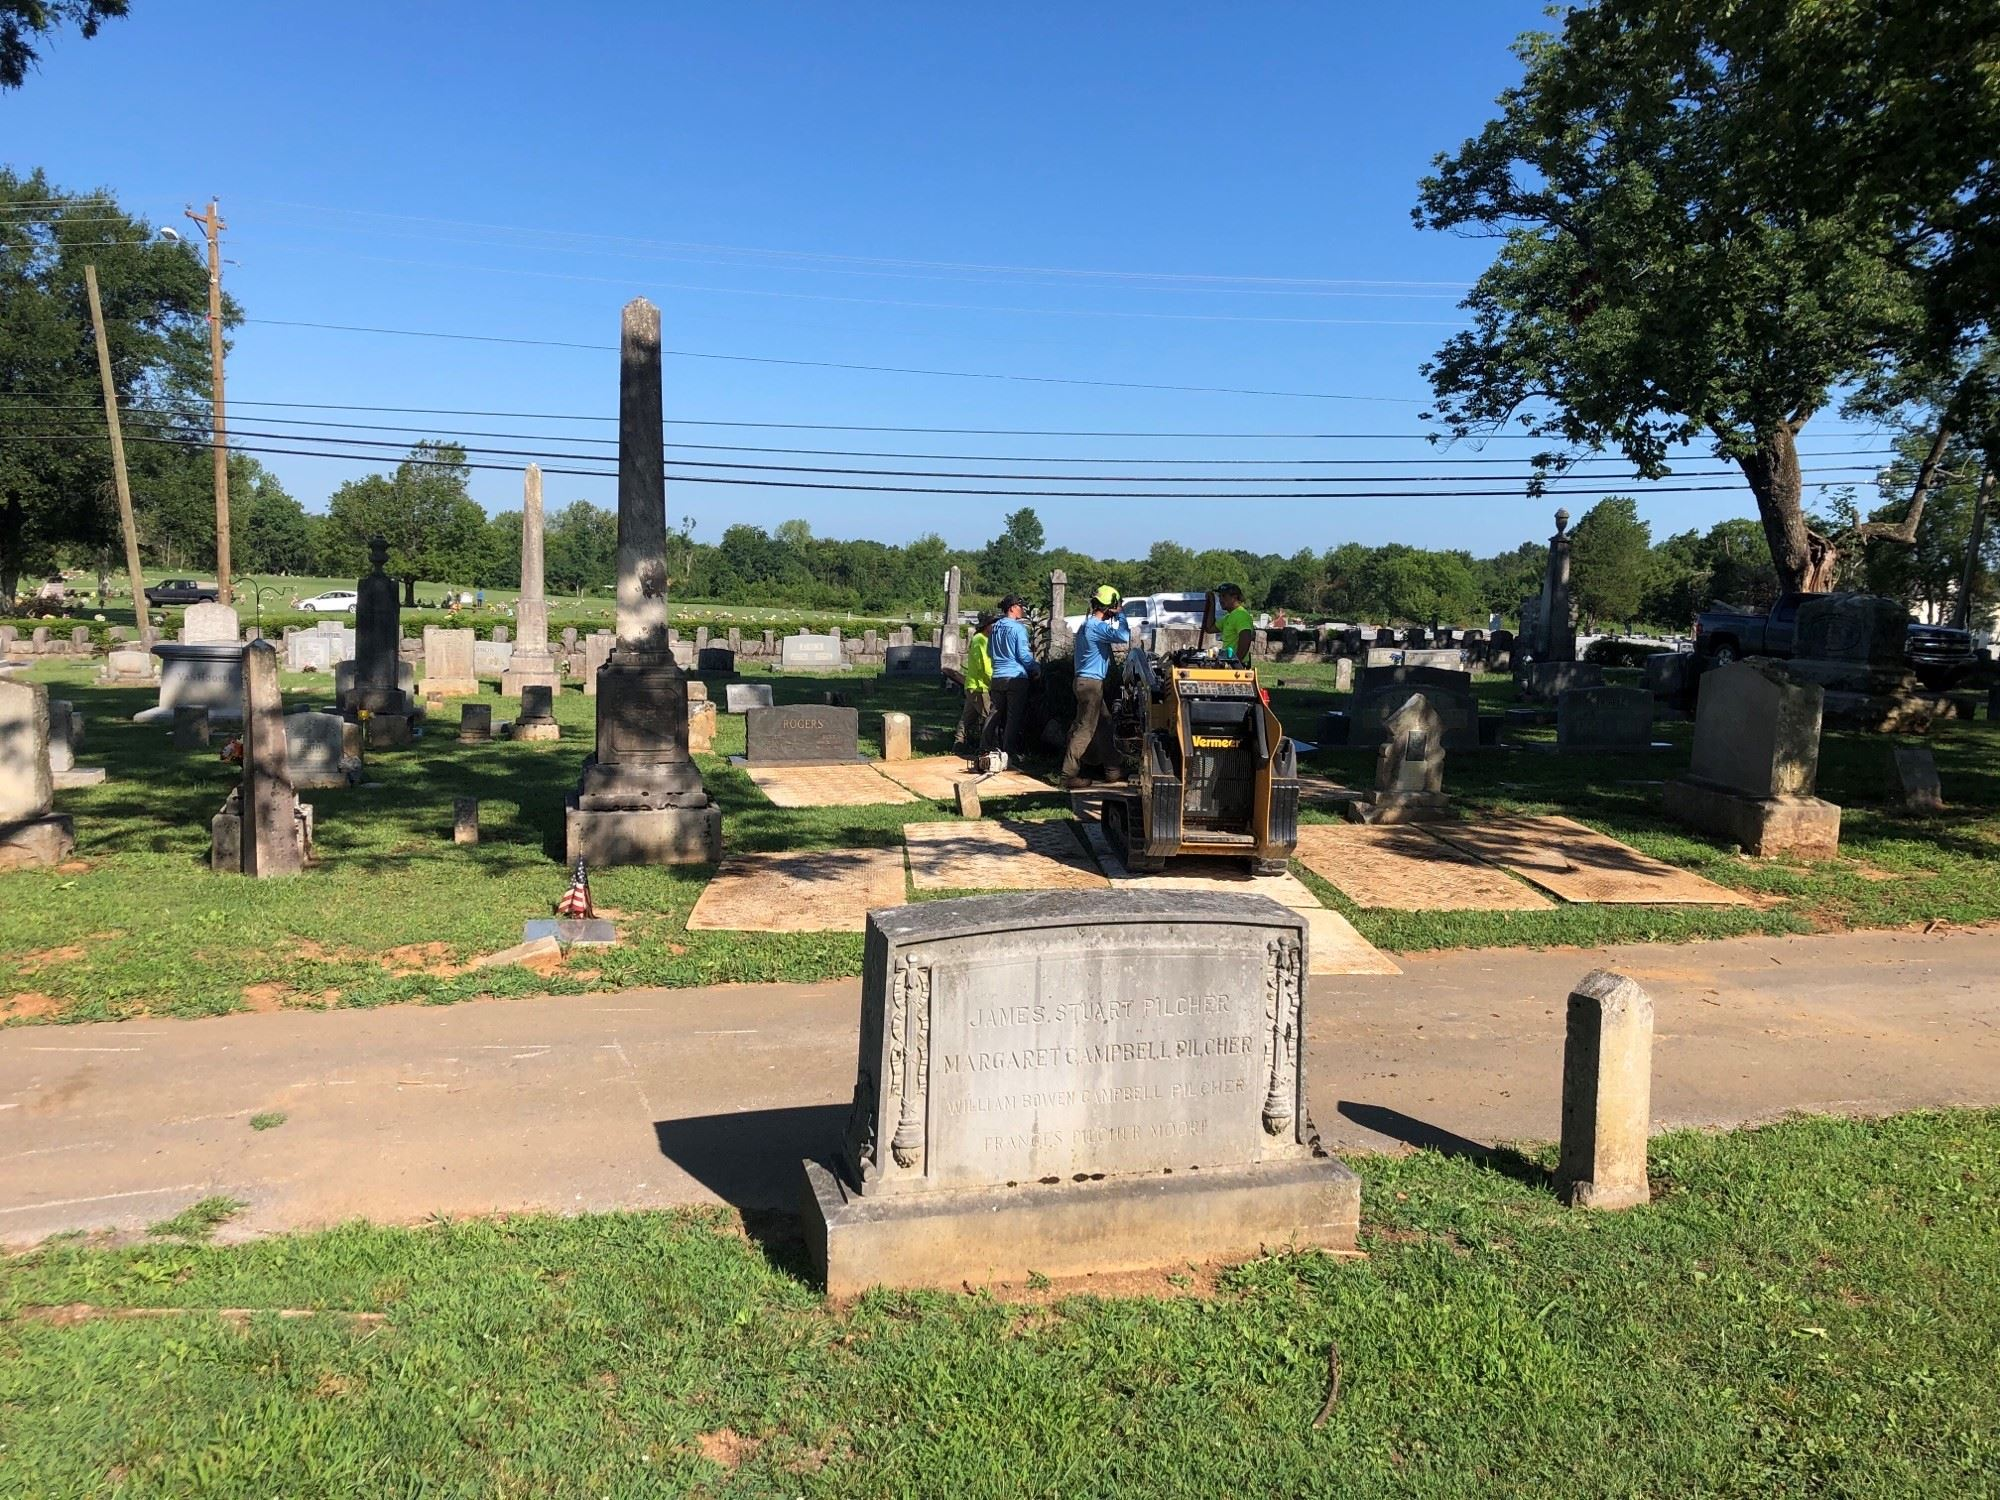 Photo - Cemetery Tornado Related Tree Damage Cleanup Begins 7-27-20